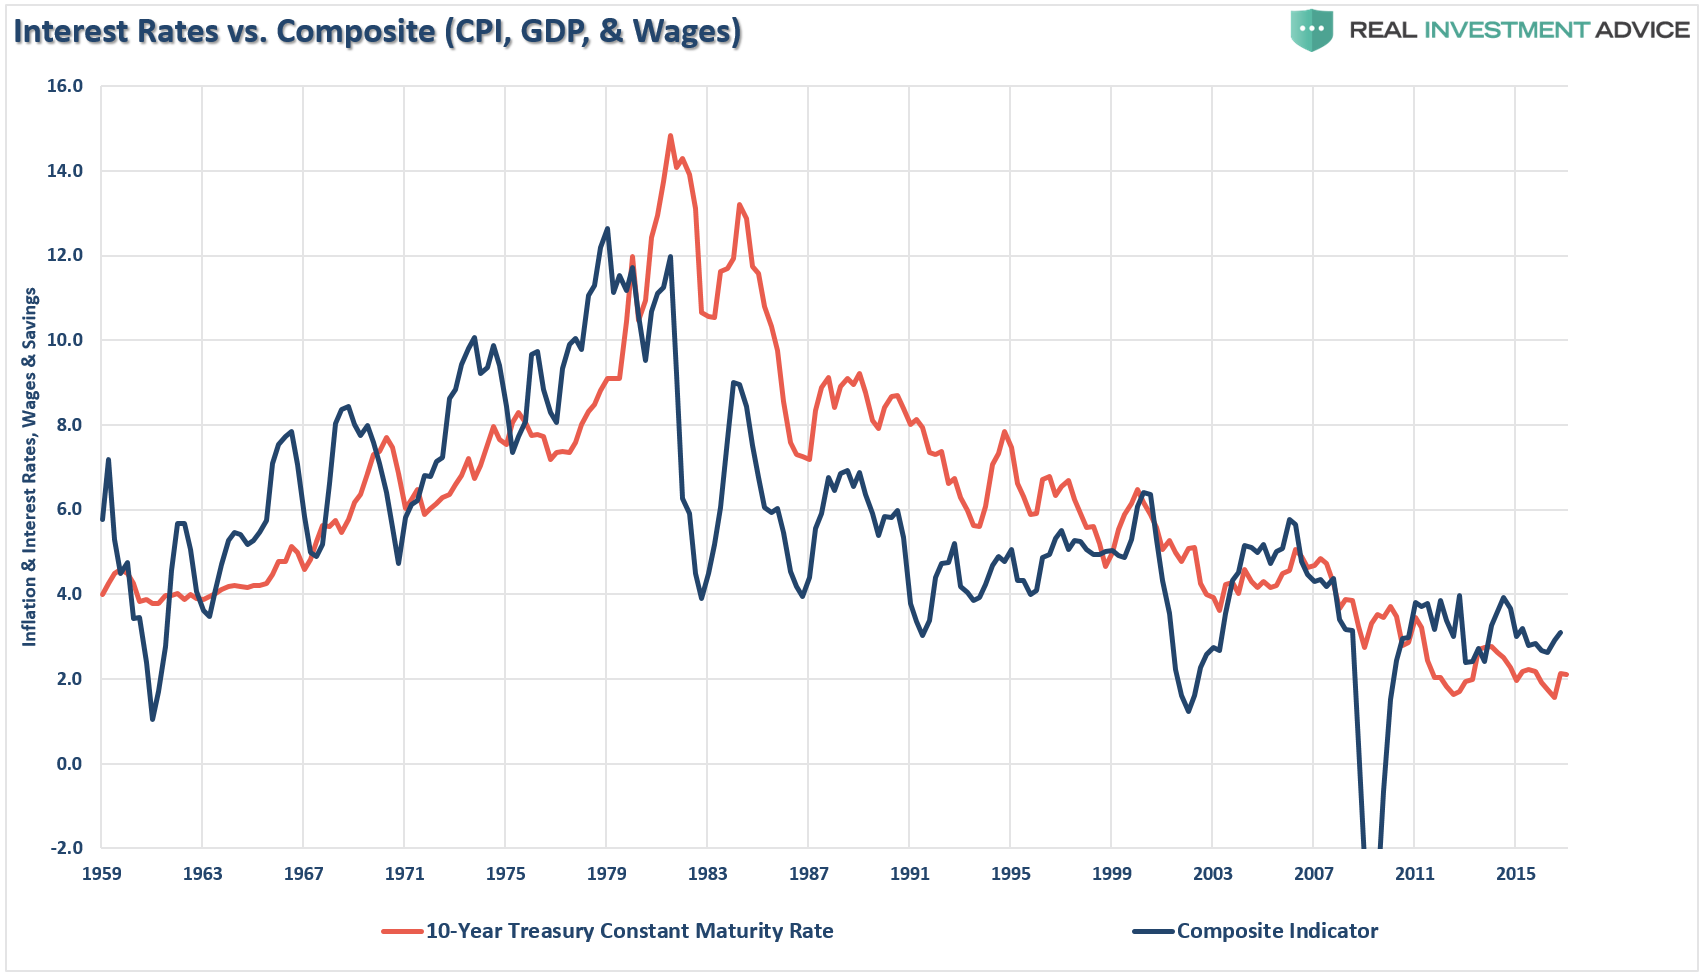 Interest Rates vs. Composite (CPI, GDP, & Wages), 1959-2015